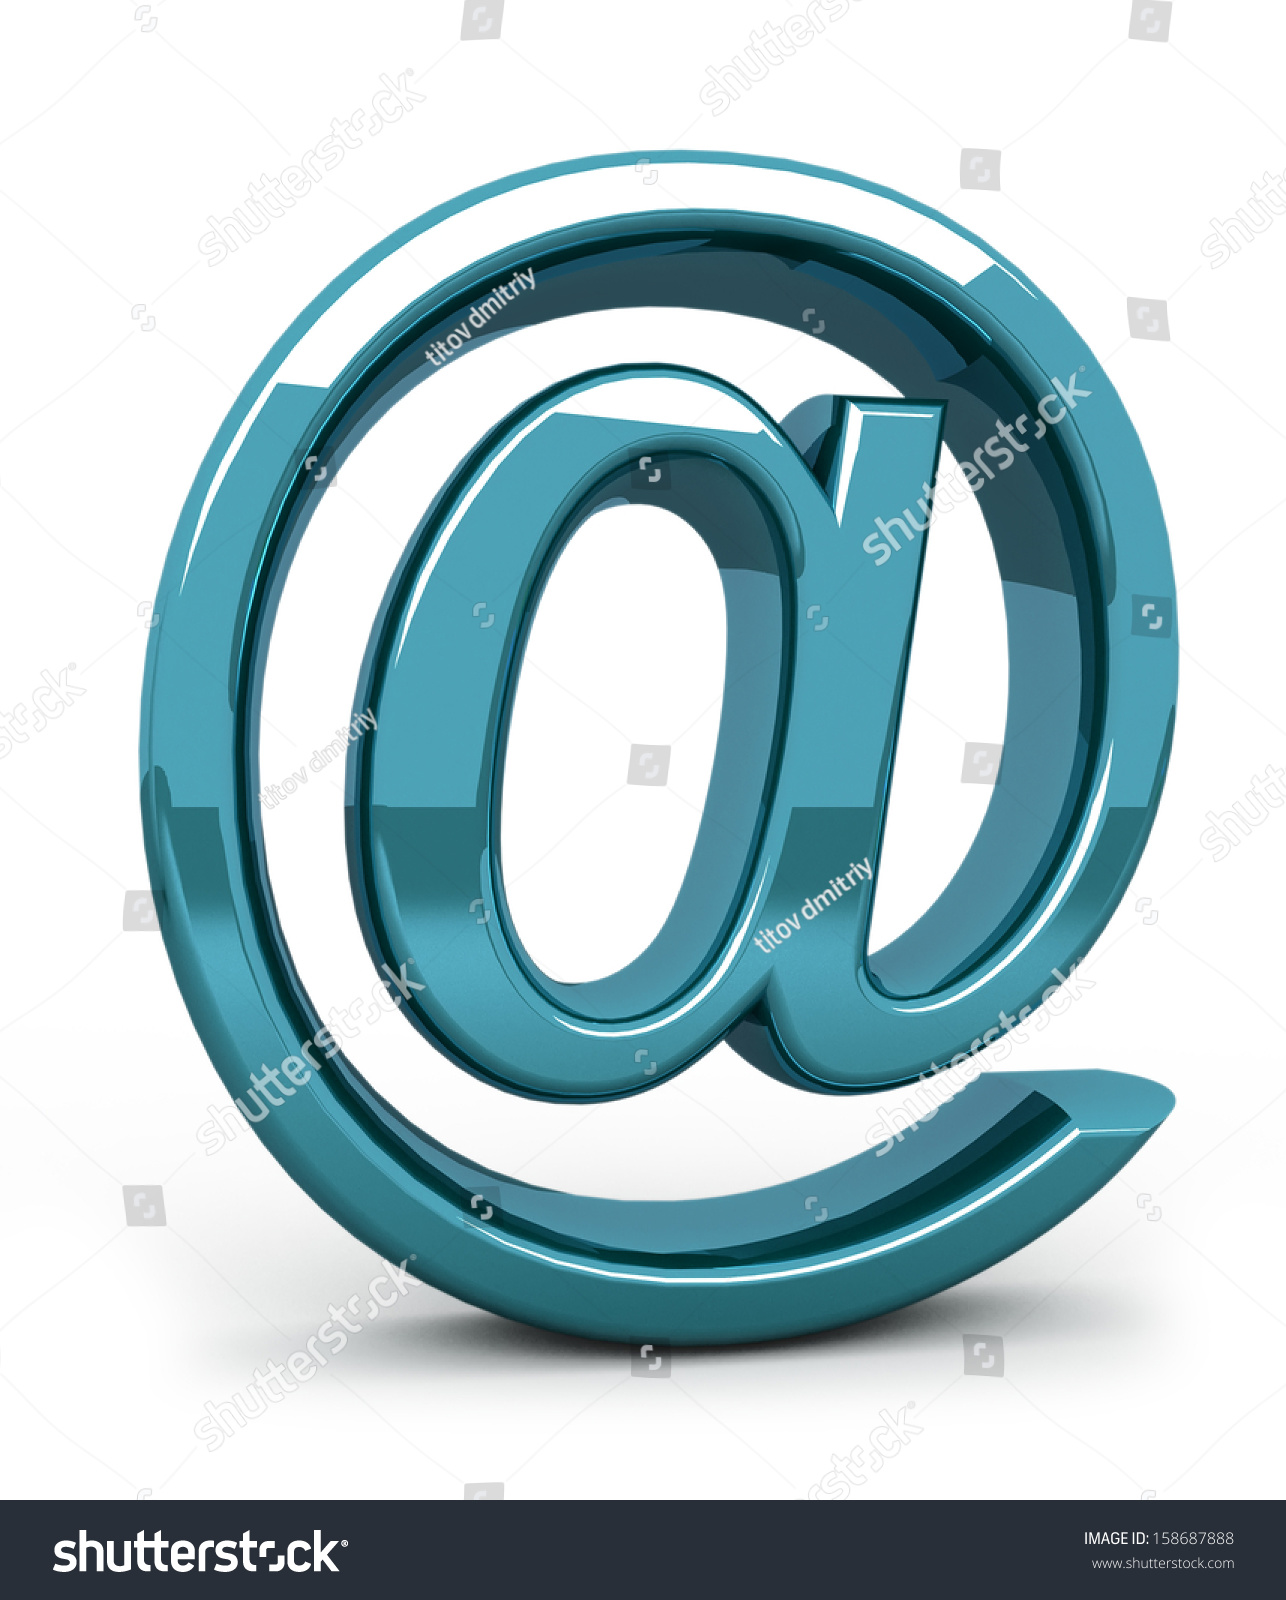 Steel email internet icon 3d isolated stock illustration 158687888 steel e mail internet icon 3d isolated on white biocorpaavc